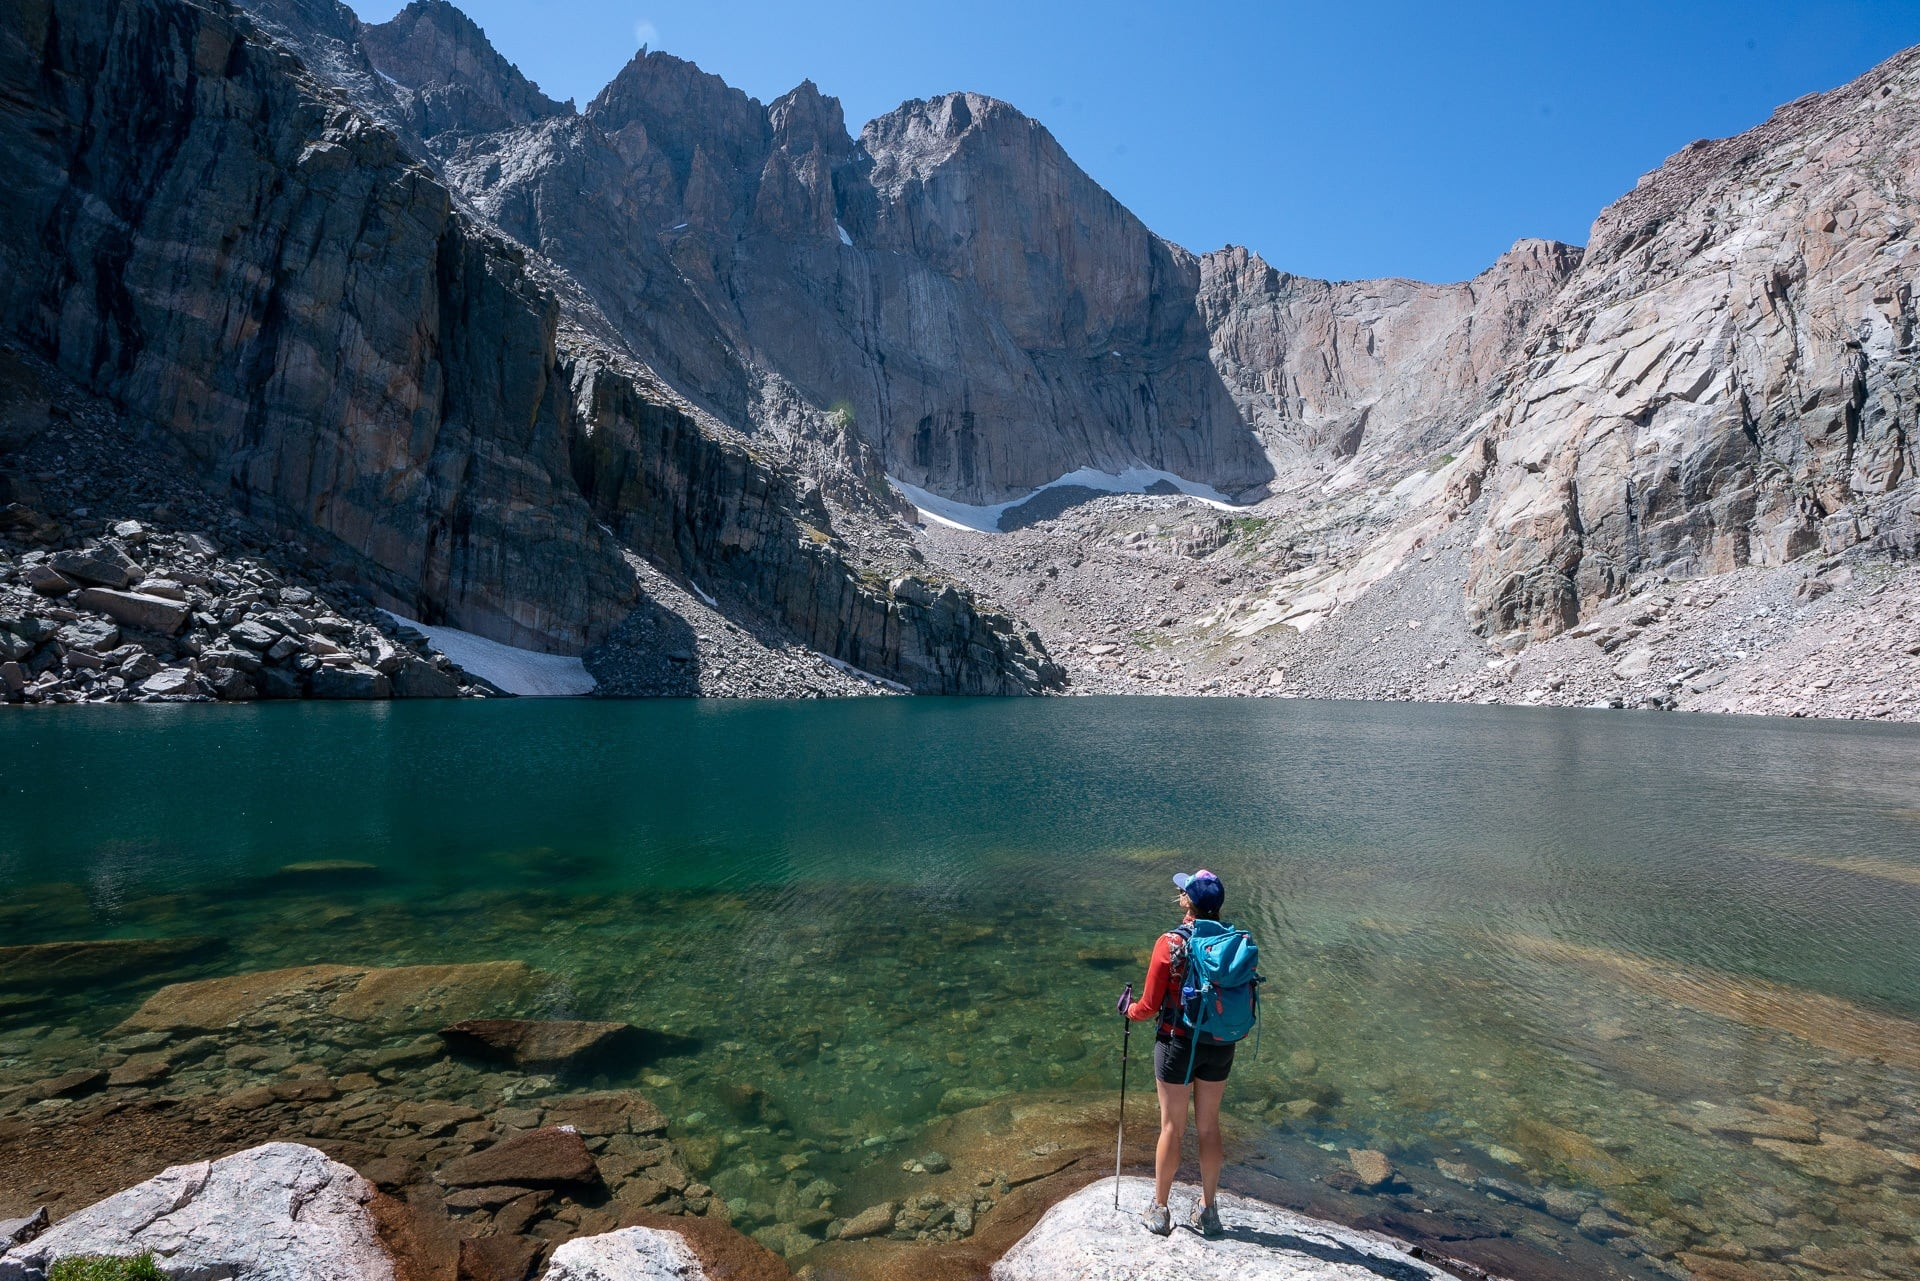 Get our guide to the best day hikes in Rocky Mountain National Park including distances, trail descriptions, what to be prepared for, and more.